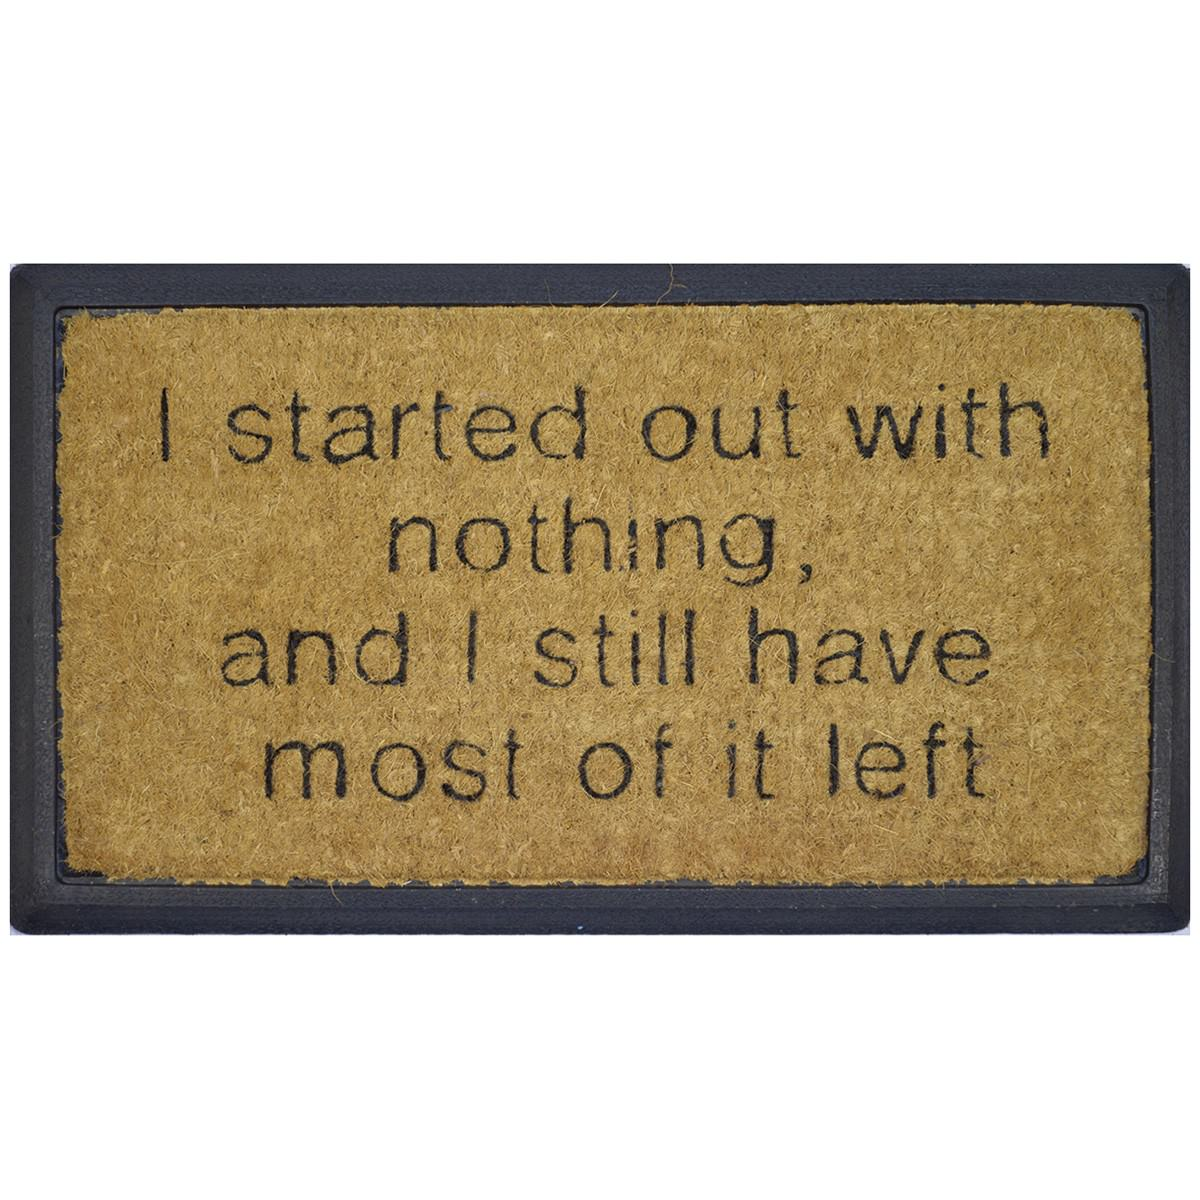 Aphorism Bevelled Coir Doormat, I Started Out with Nothing, 70x40cm